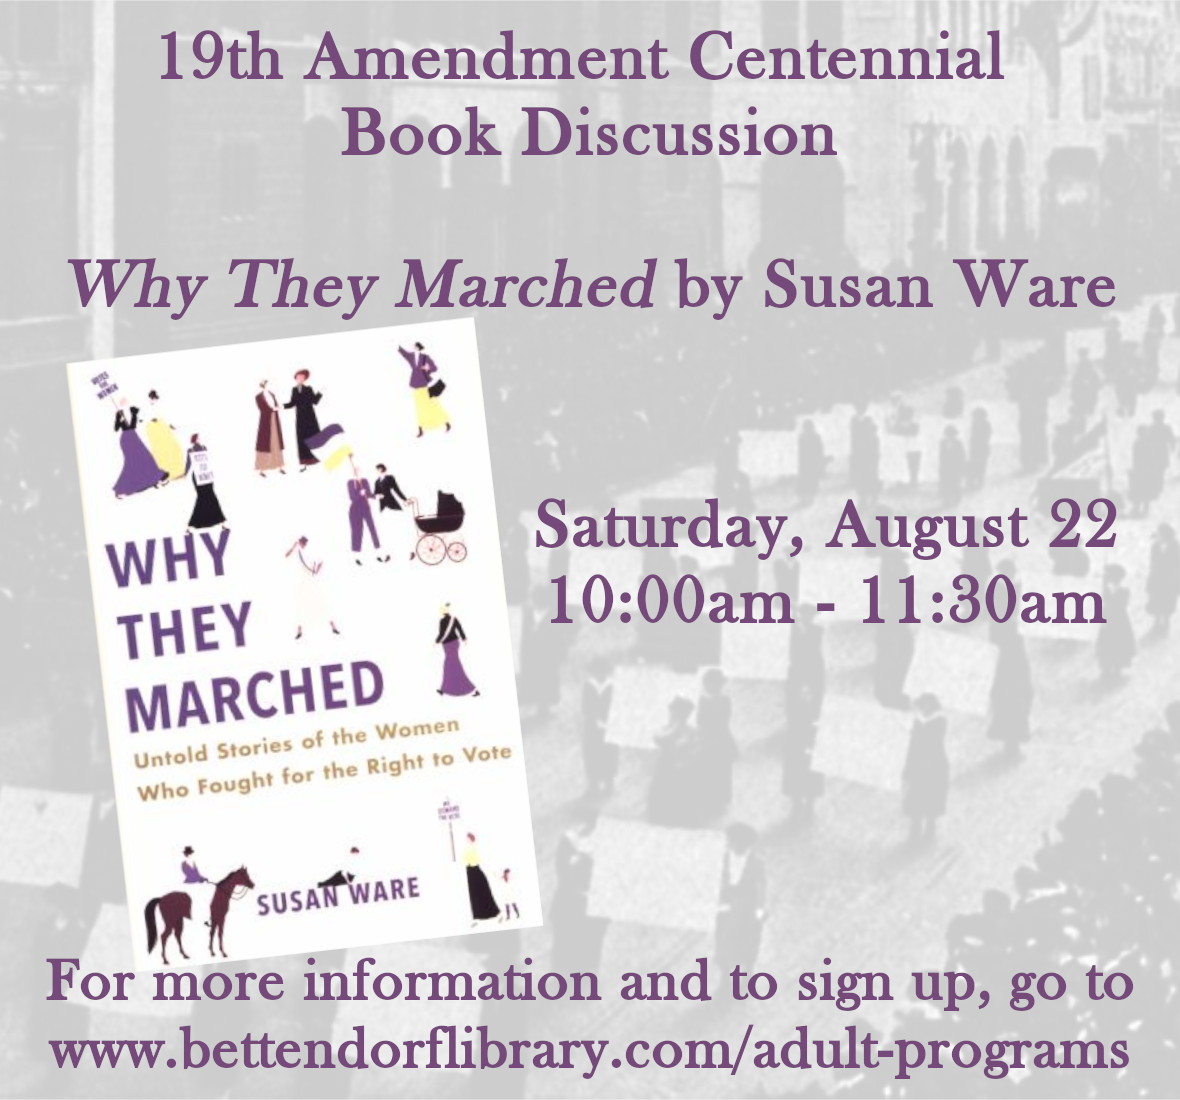 To commemorate the centennial anniversary of the ratification of the 19th Amendment, join us for an online discussion of Why They Marched: Untold Stories of the Women Who Fought for the Right to Vote by Susan Ware.    #BettLib #19thAmendment